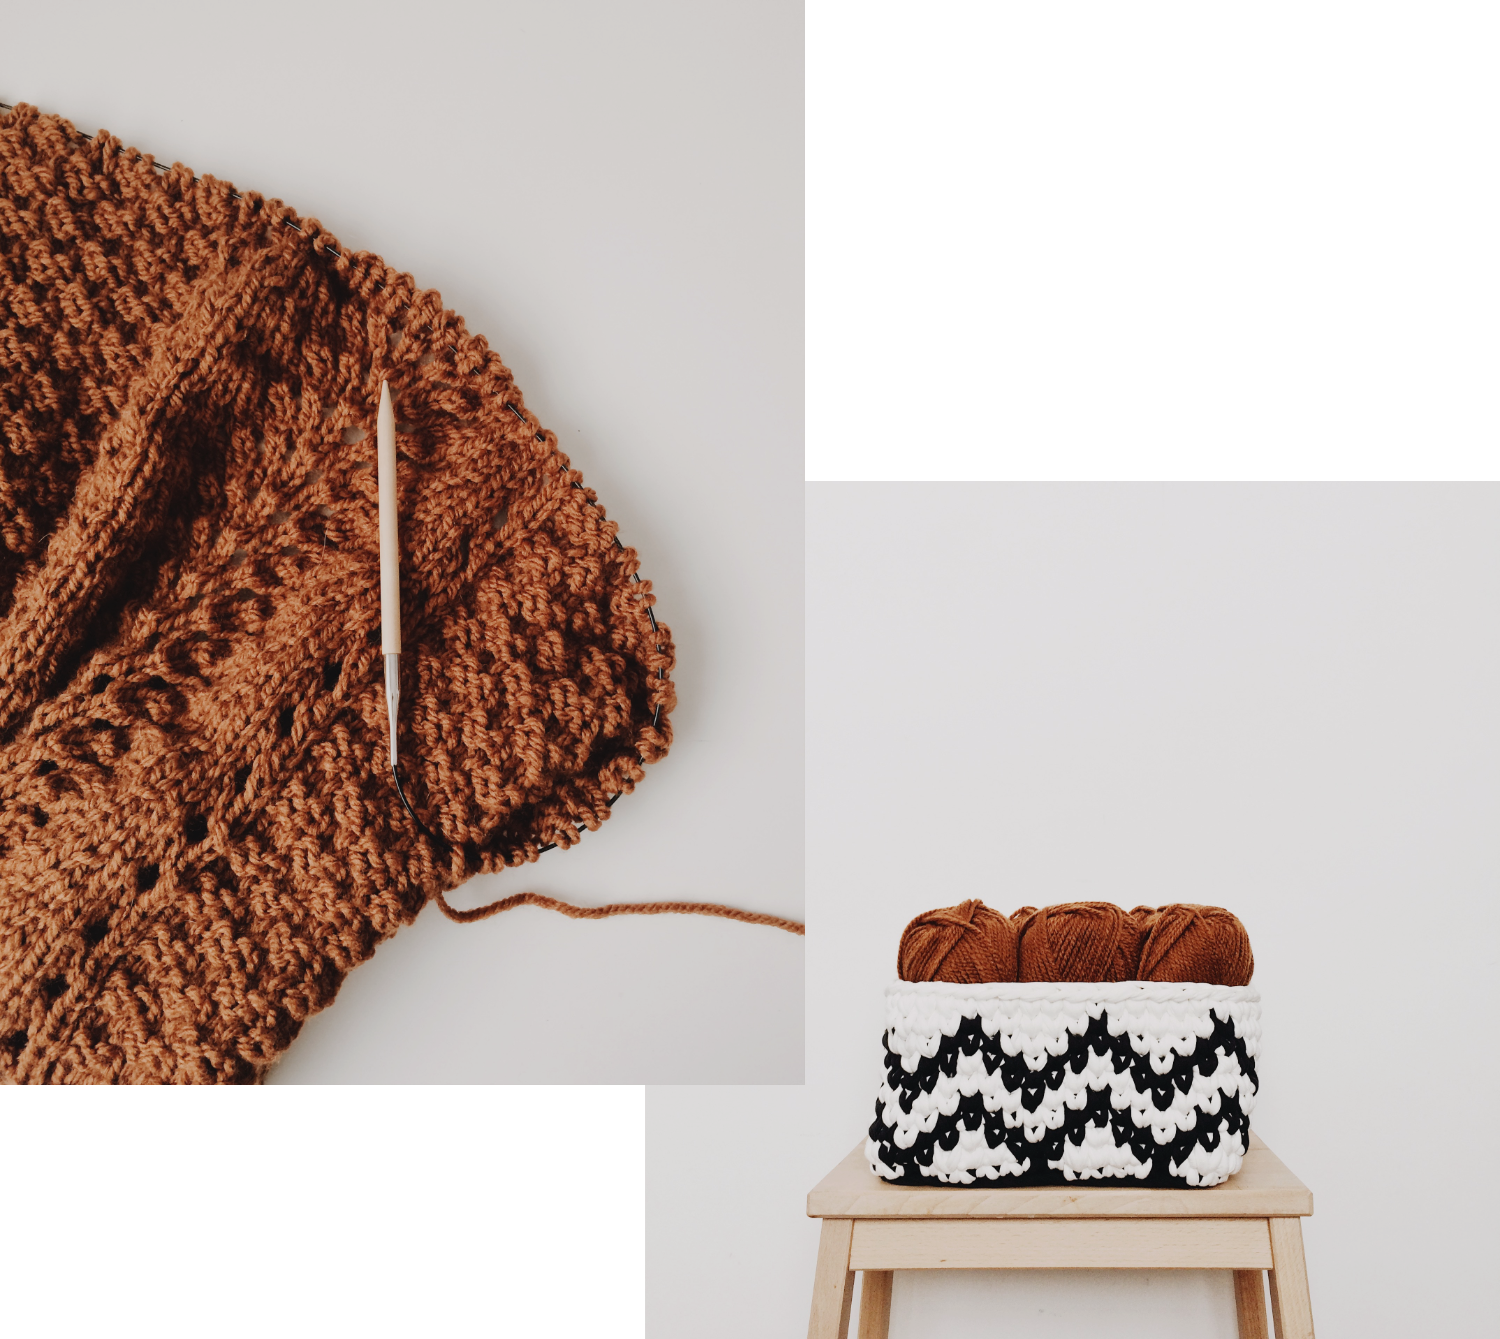 10-knit-photo-01.png